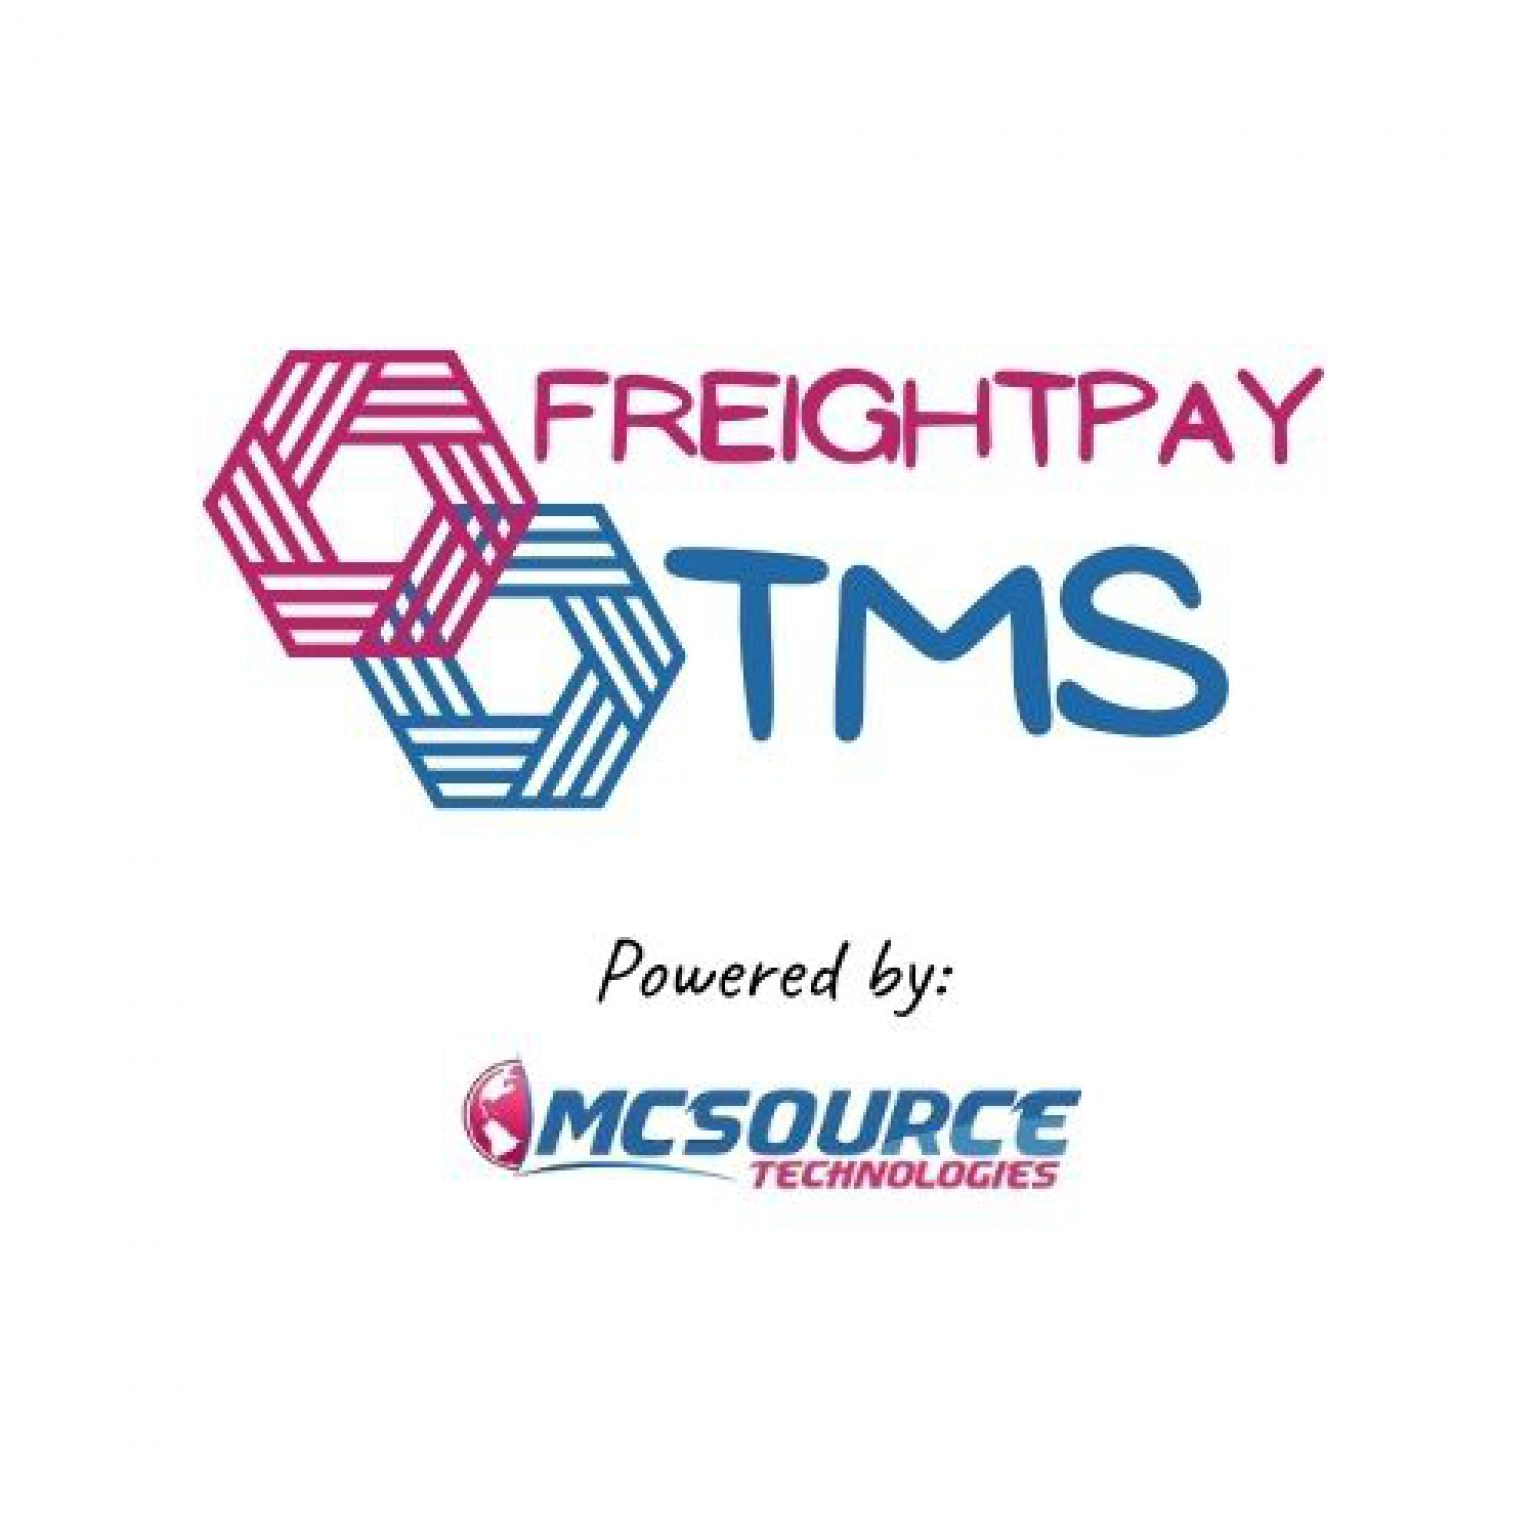 freight pay TMS